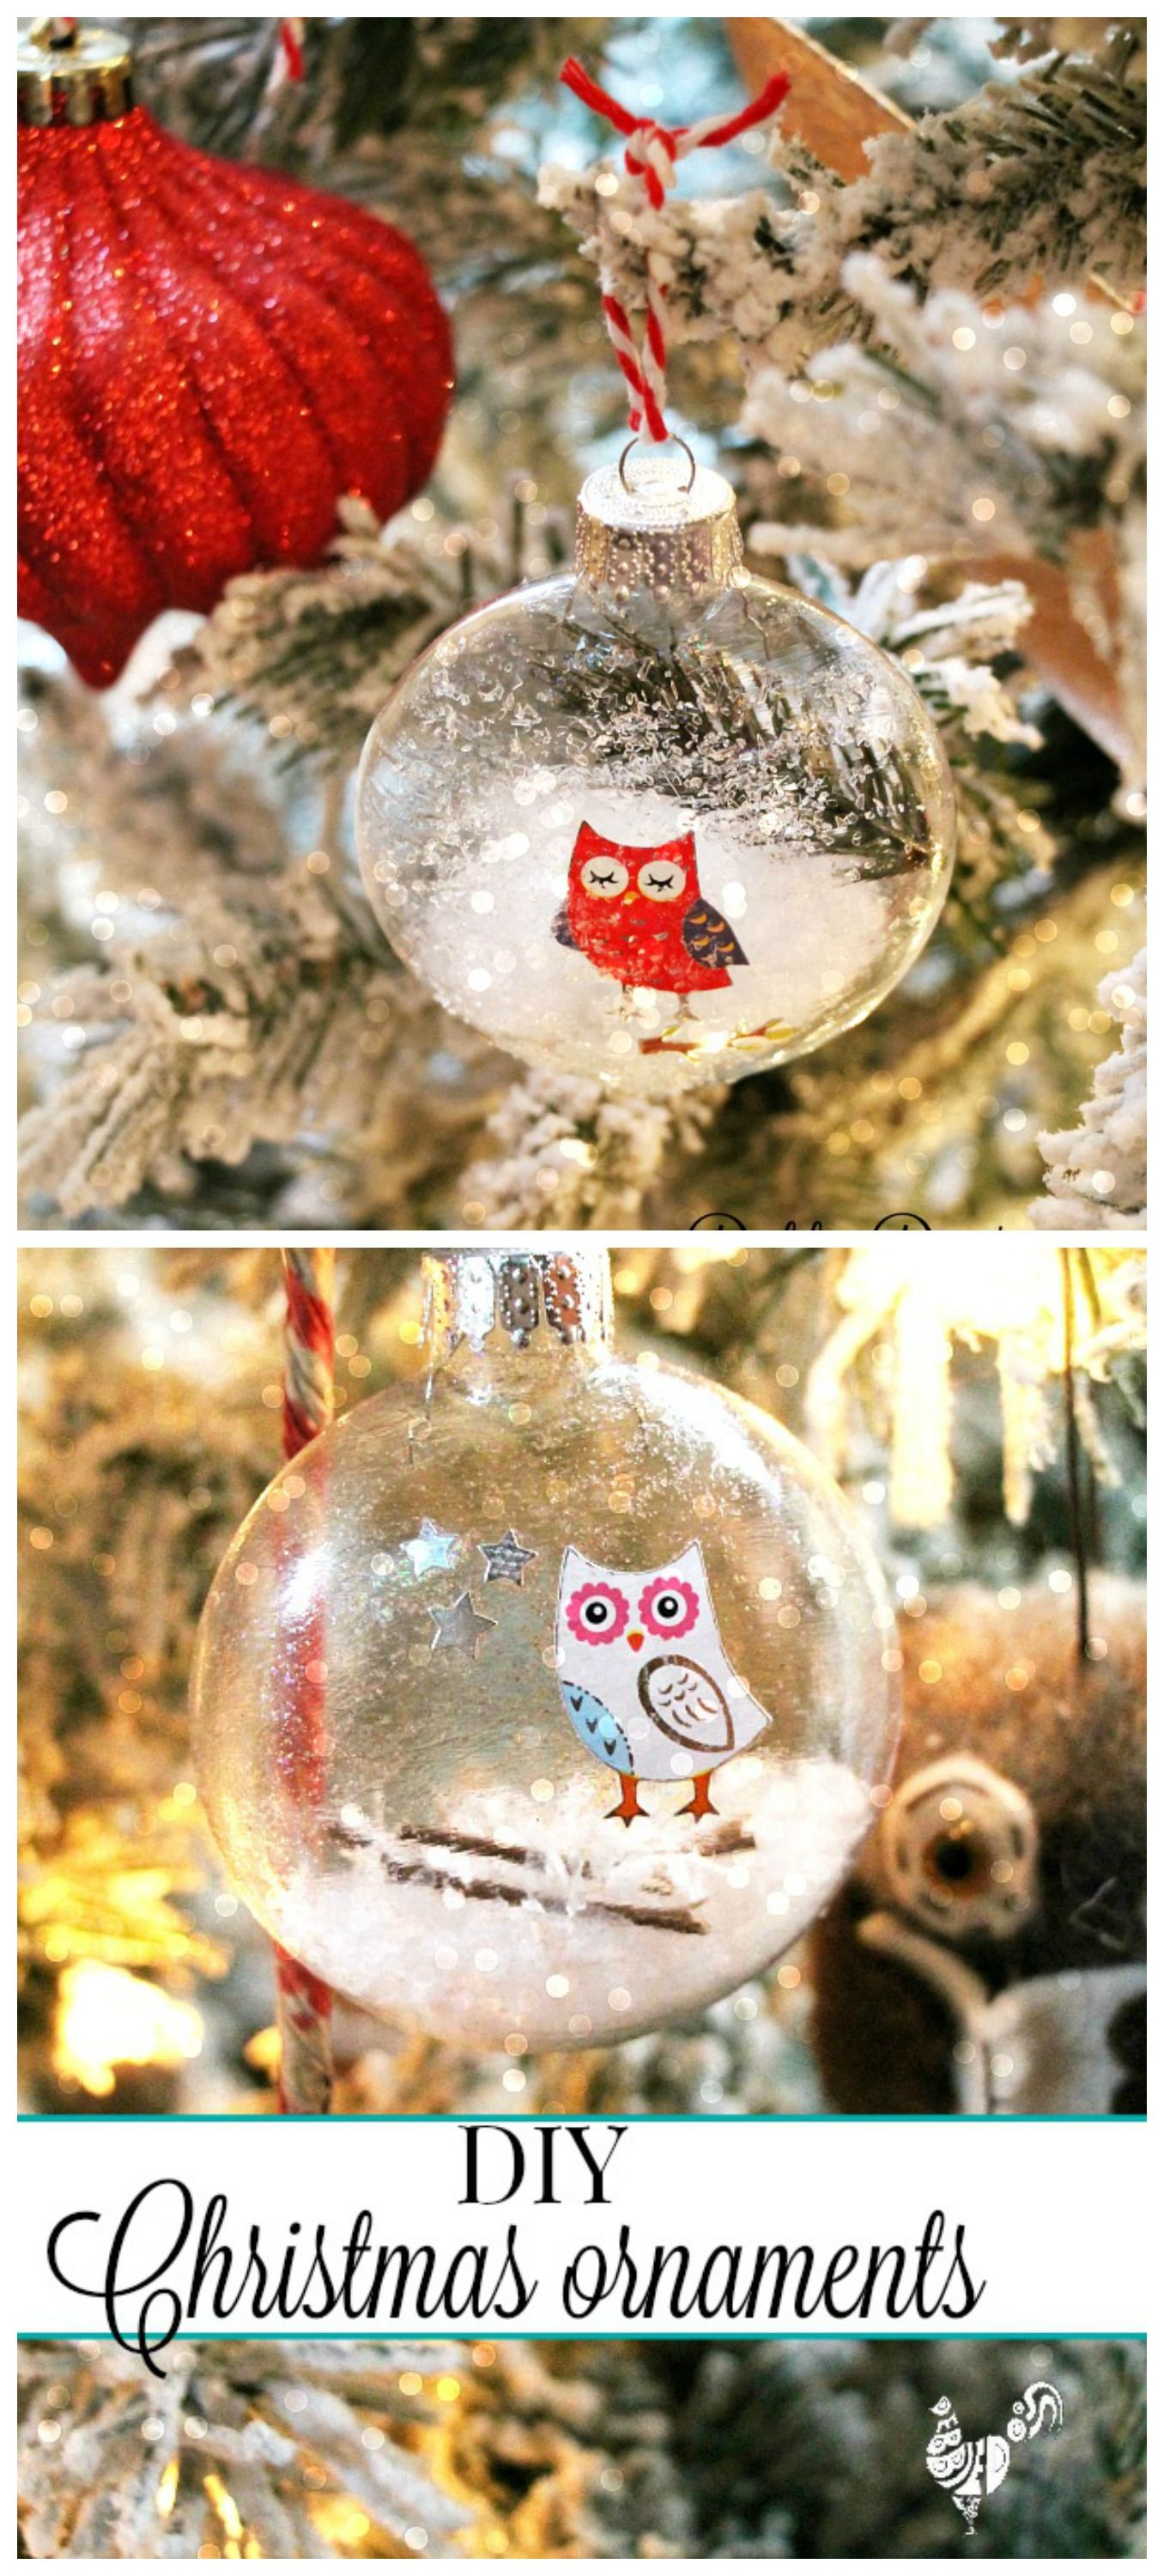 how to make your own christmas ornaments this year with glitter and glam - How To Make Your Own Christmas Decorations